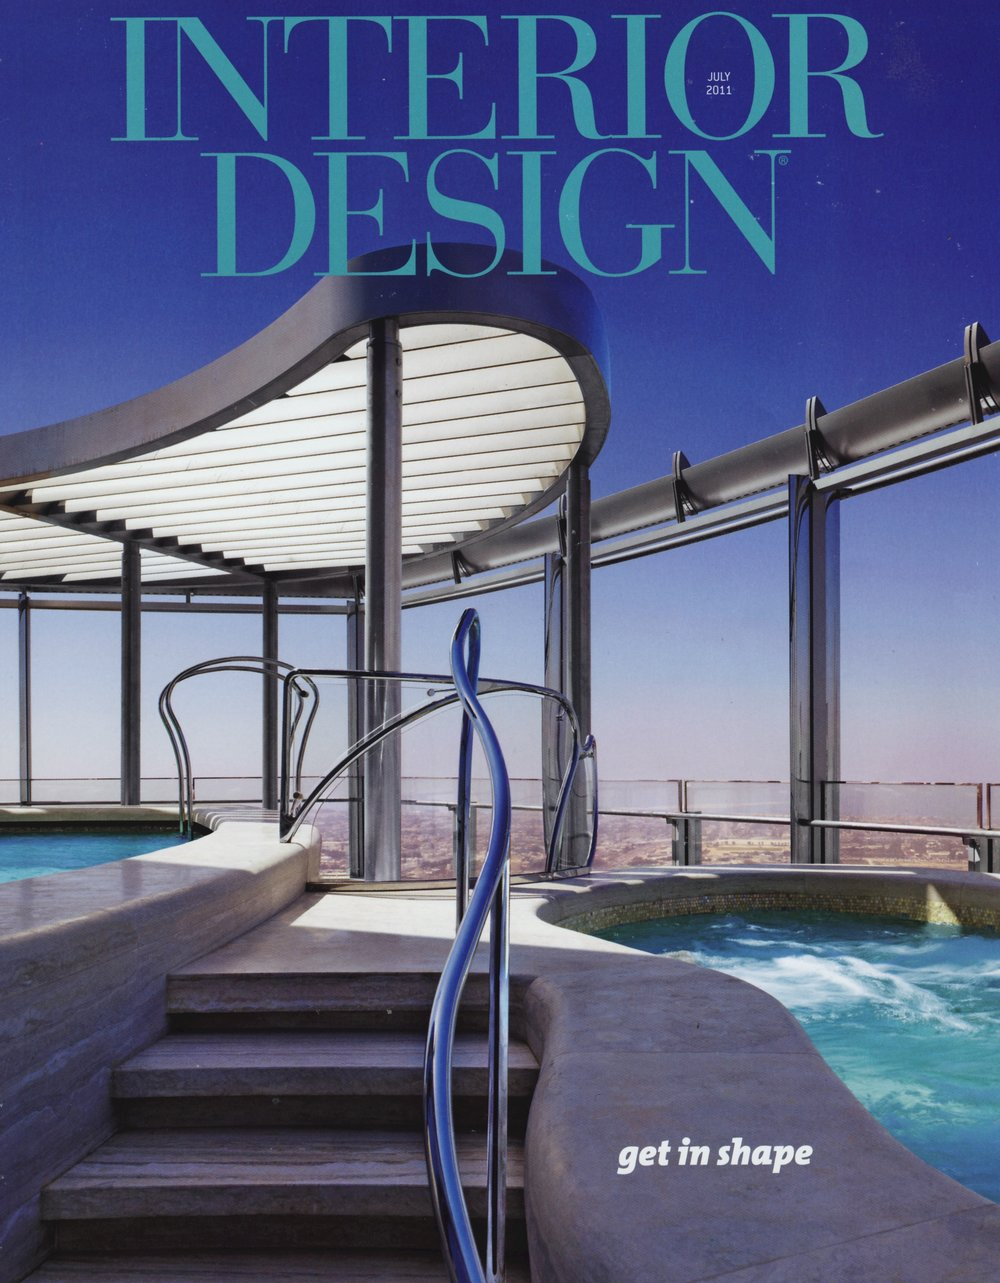 Matters of Design, Interior Design, 2011